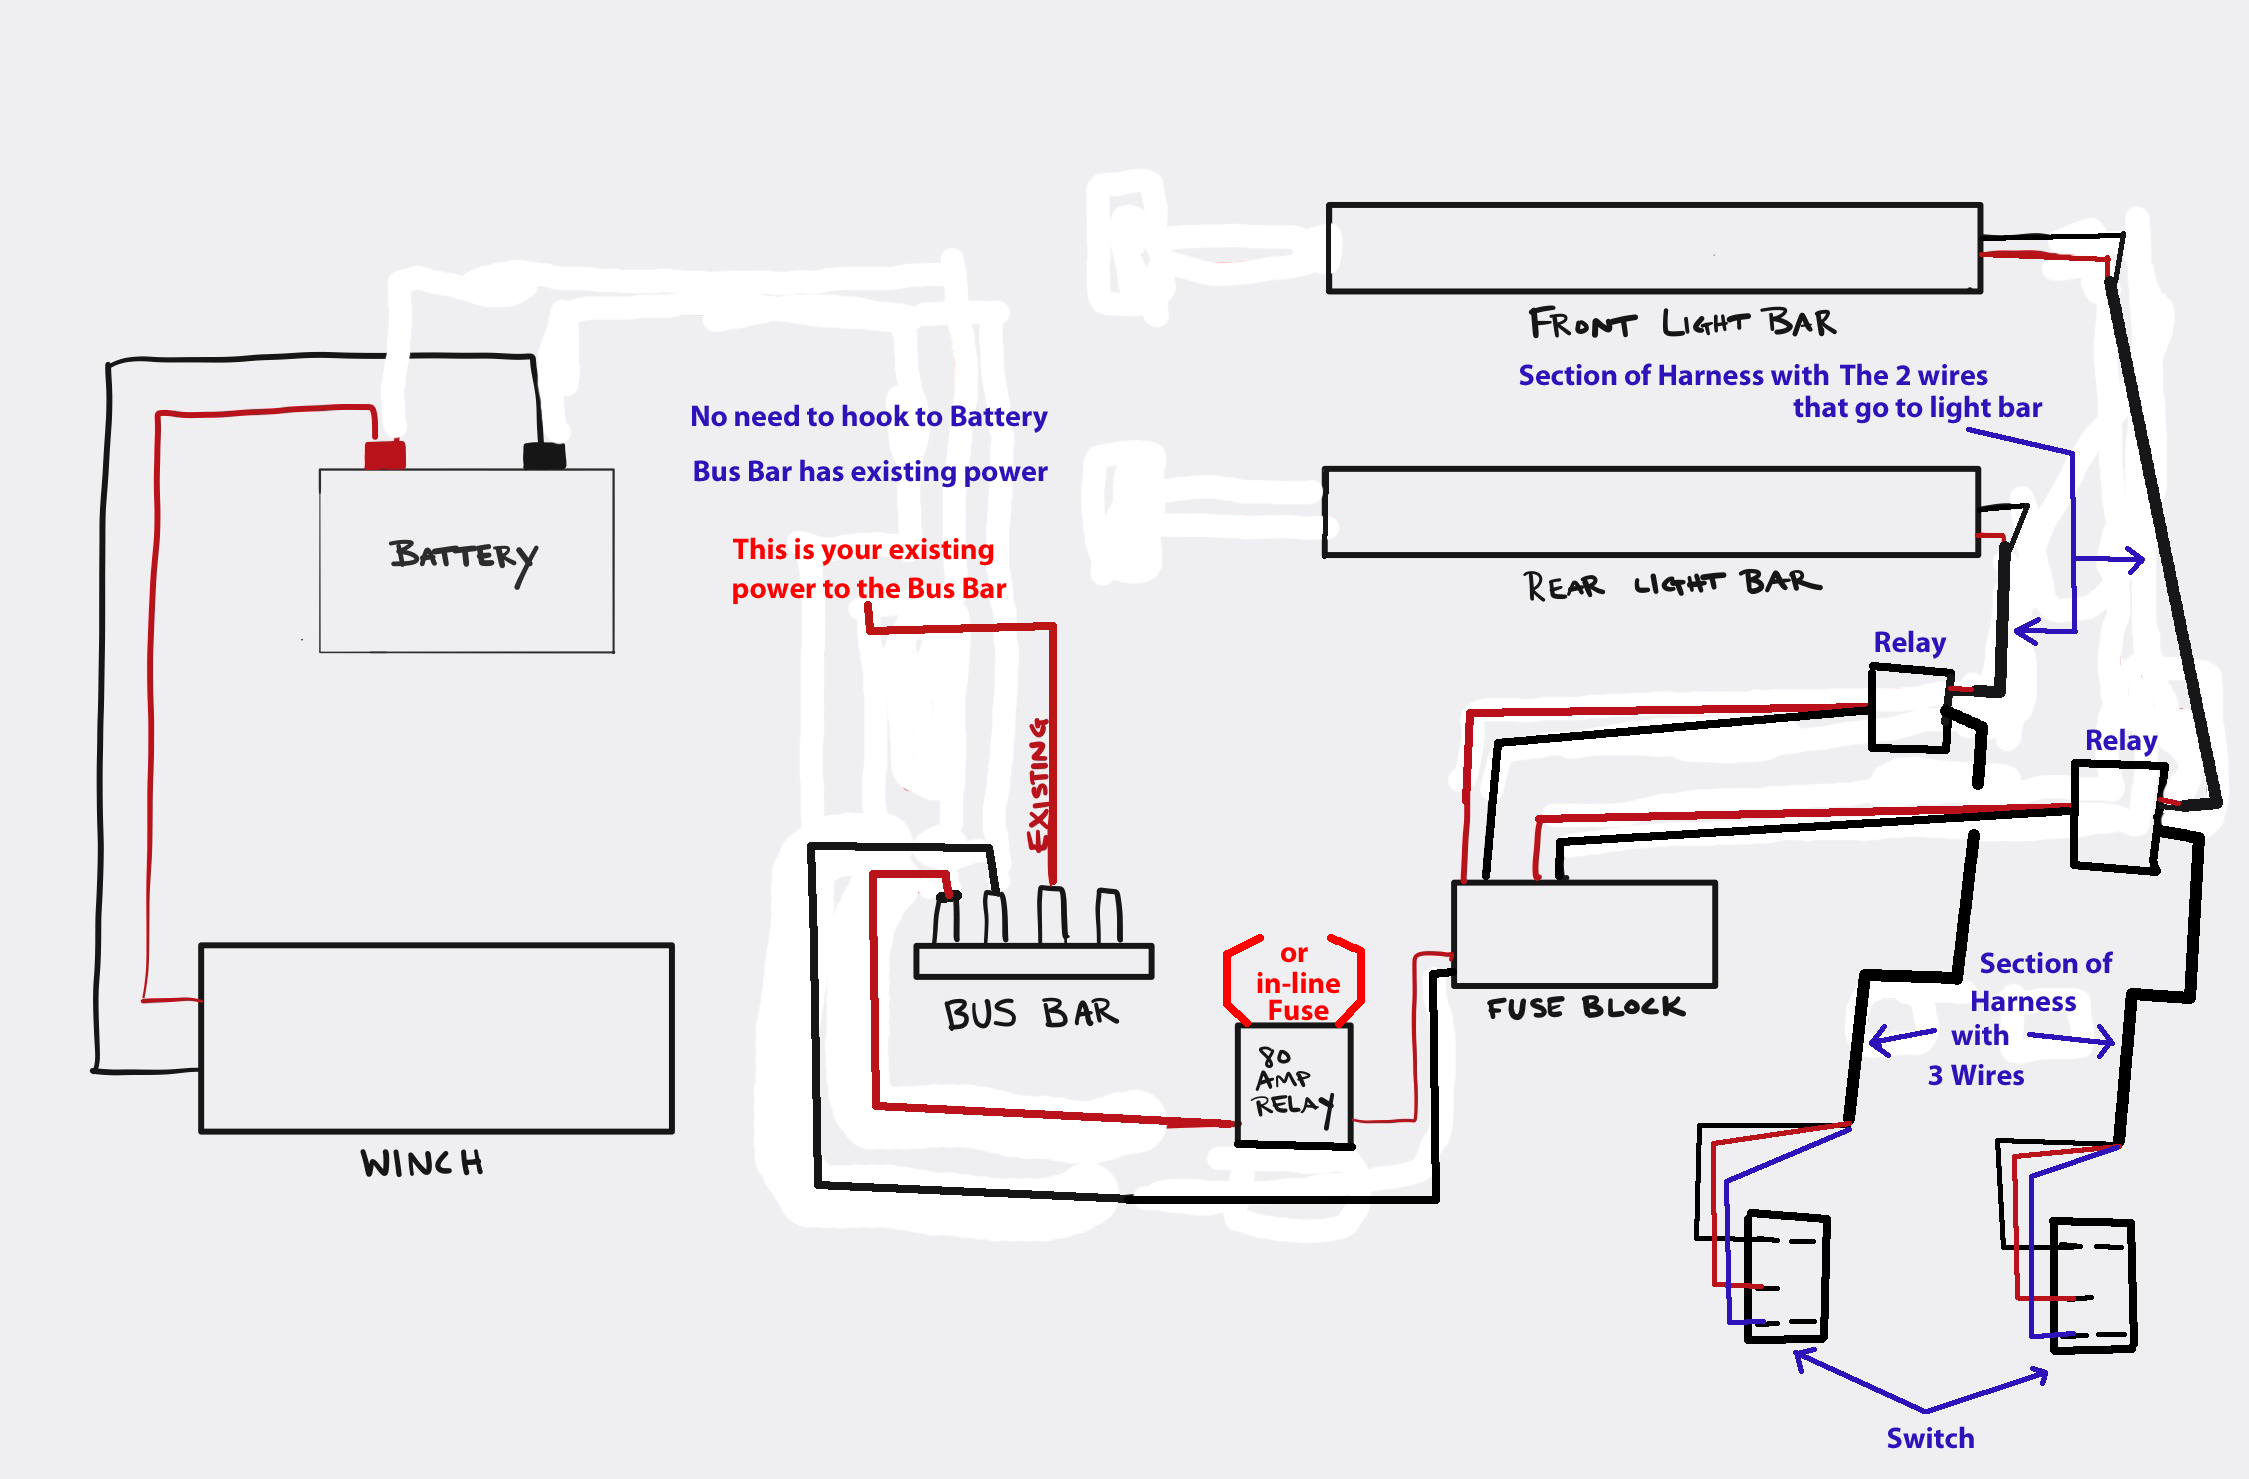 busbar wiring diagram - wiring diagrams schematics  vanriet-advocaten.nl